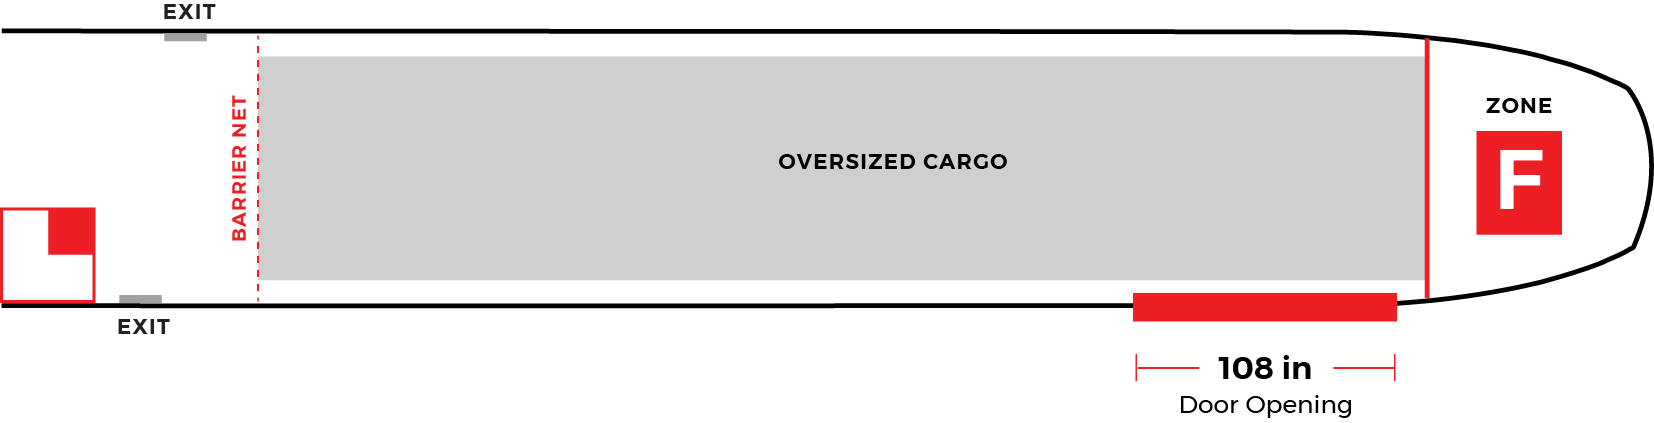 Dash 8 oversized cargo configuration